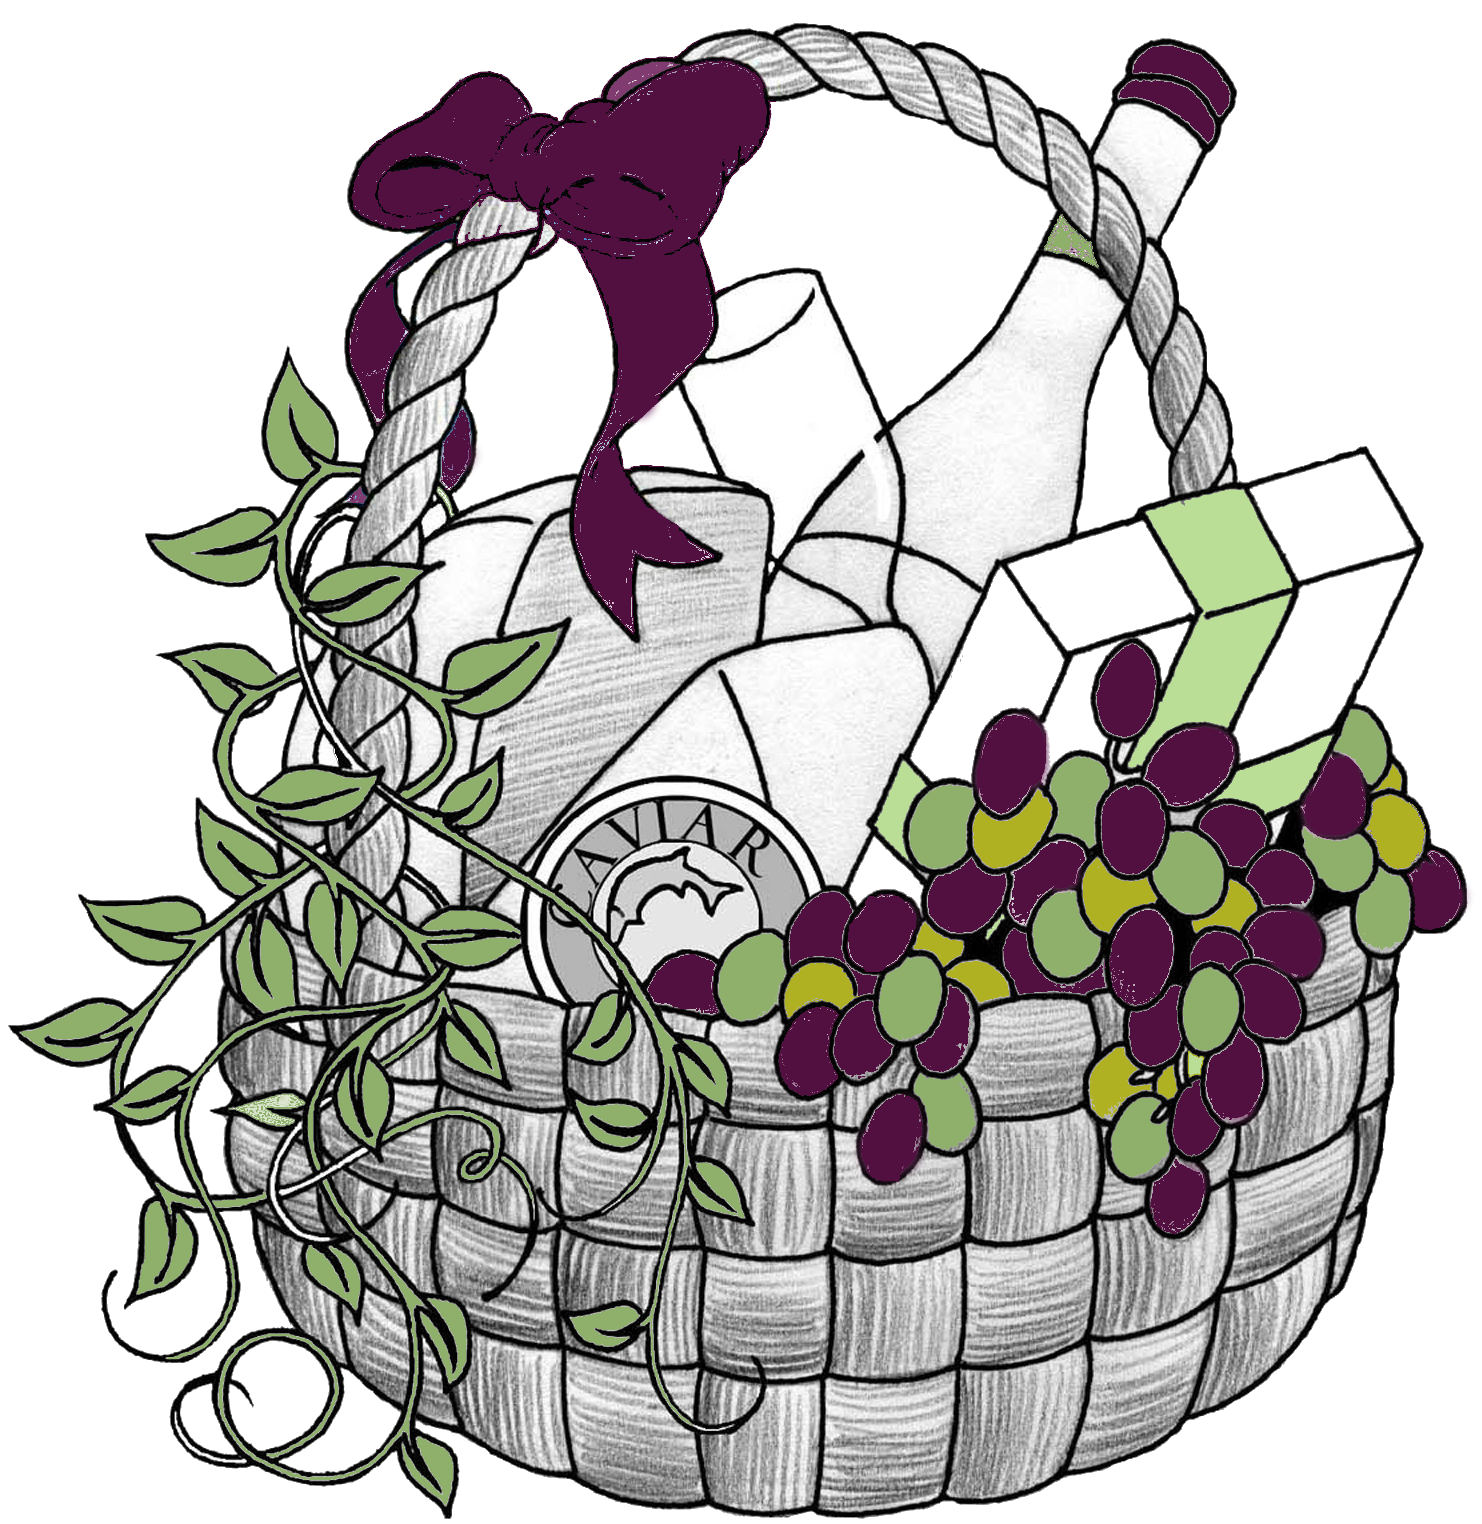 Christmas basket clipart svg freeuse download 28+ Collection of Free Clipart Gift Baskets | High quality, free ... svg freeuse download